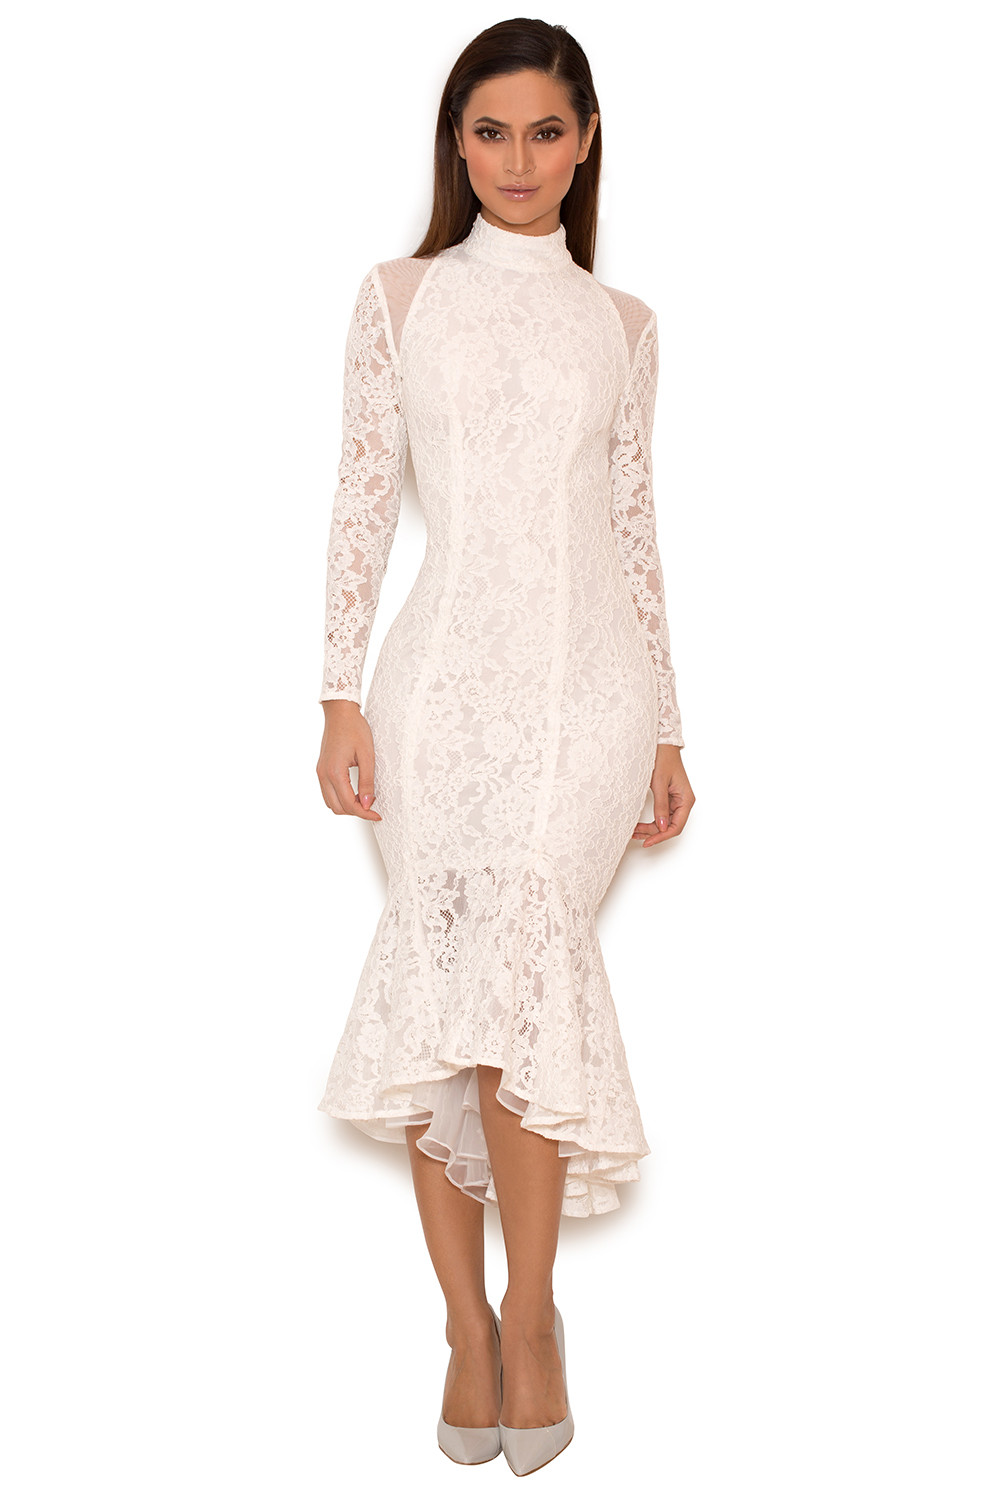 Clothing : Bodycon Dresses : 'Jorani' White Lace Long Sleeved Dress